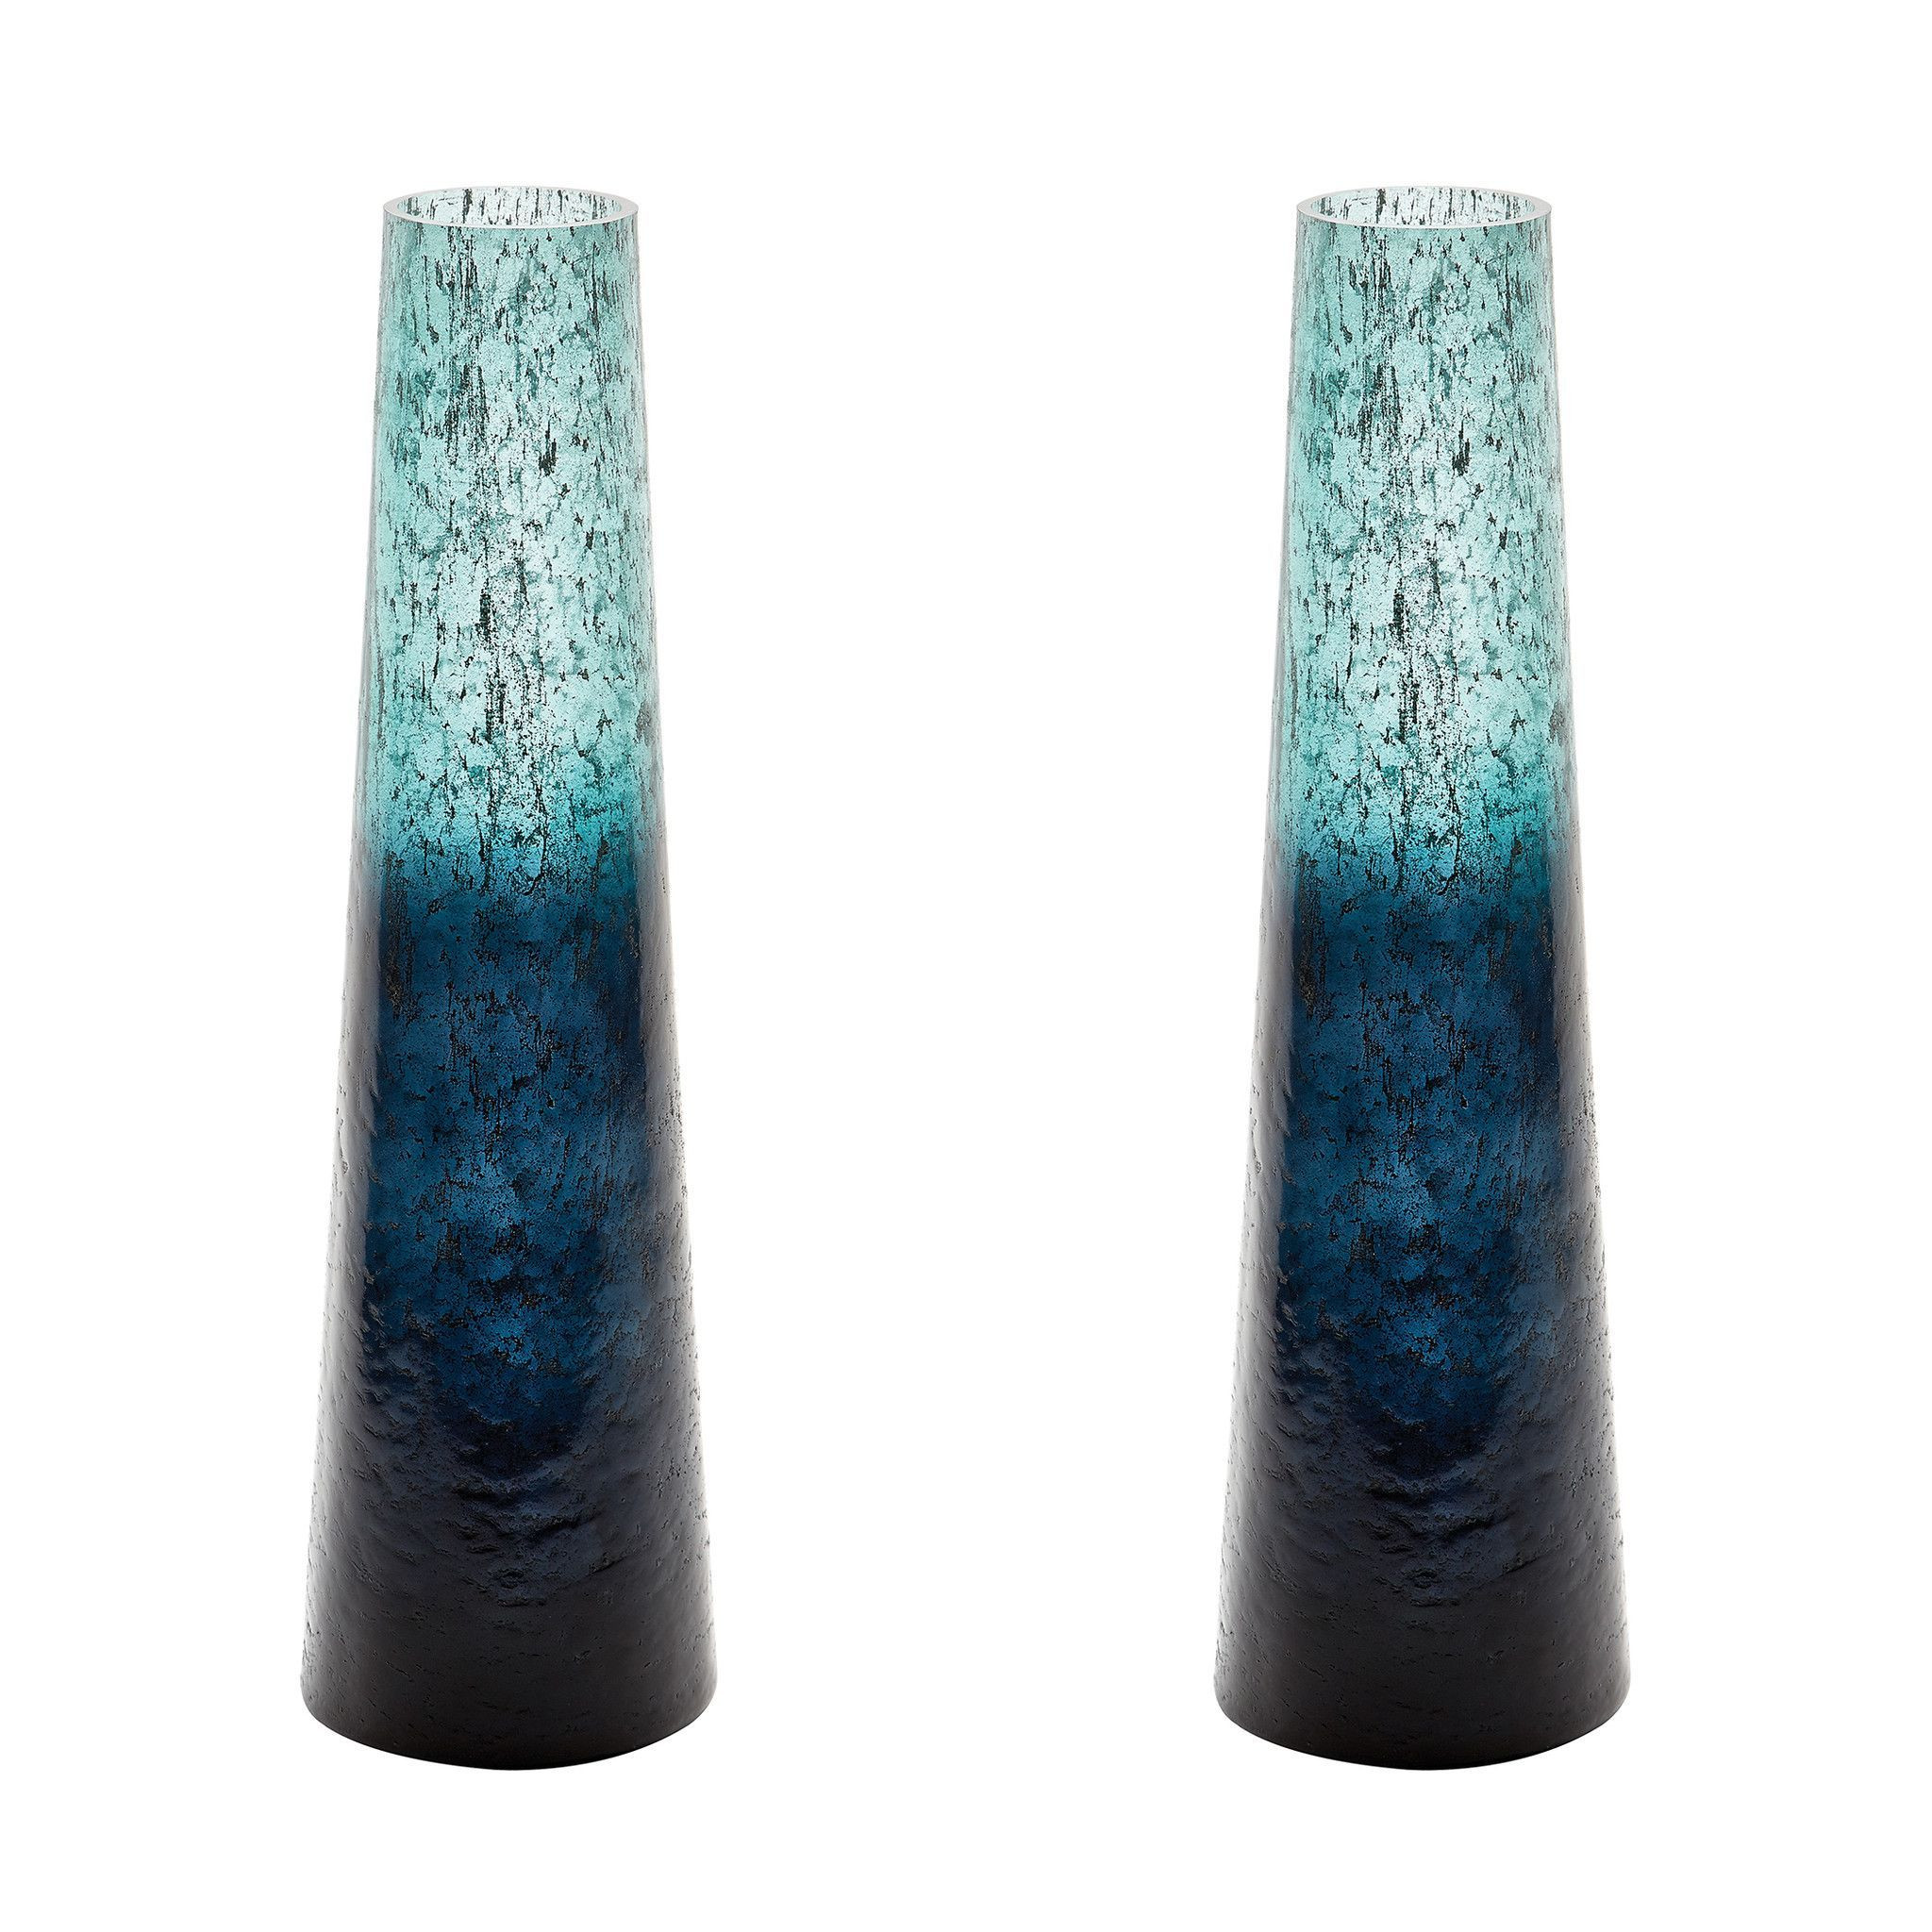 cylinder vase set of lazy susan emerald ombre snorkel vase 876034 s2 products in this set of 2 emerald ombre snorkel vases are each mouth blown by a skilled craftsman using traditional techniques the ombre finish is hand applied after